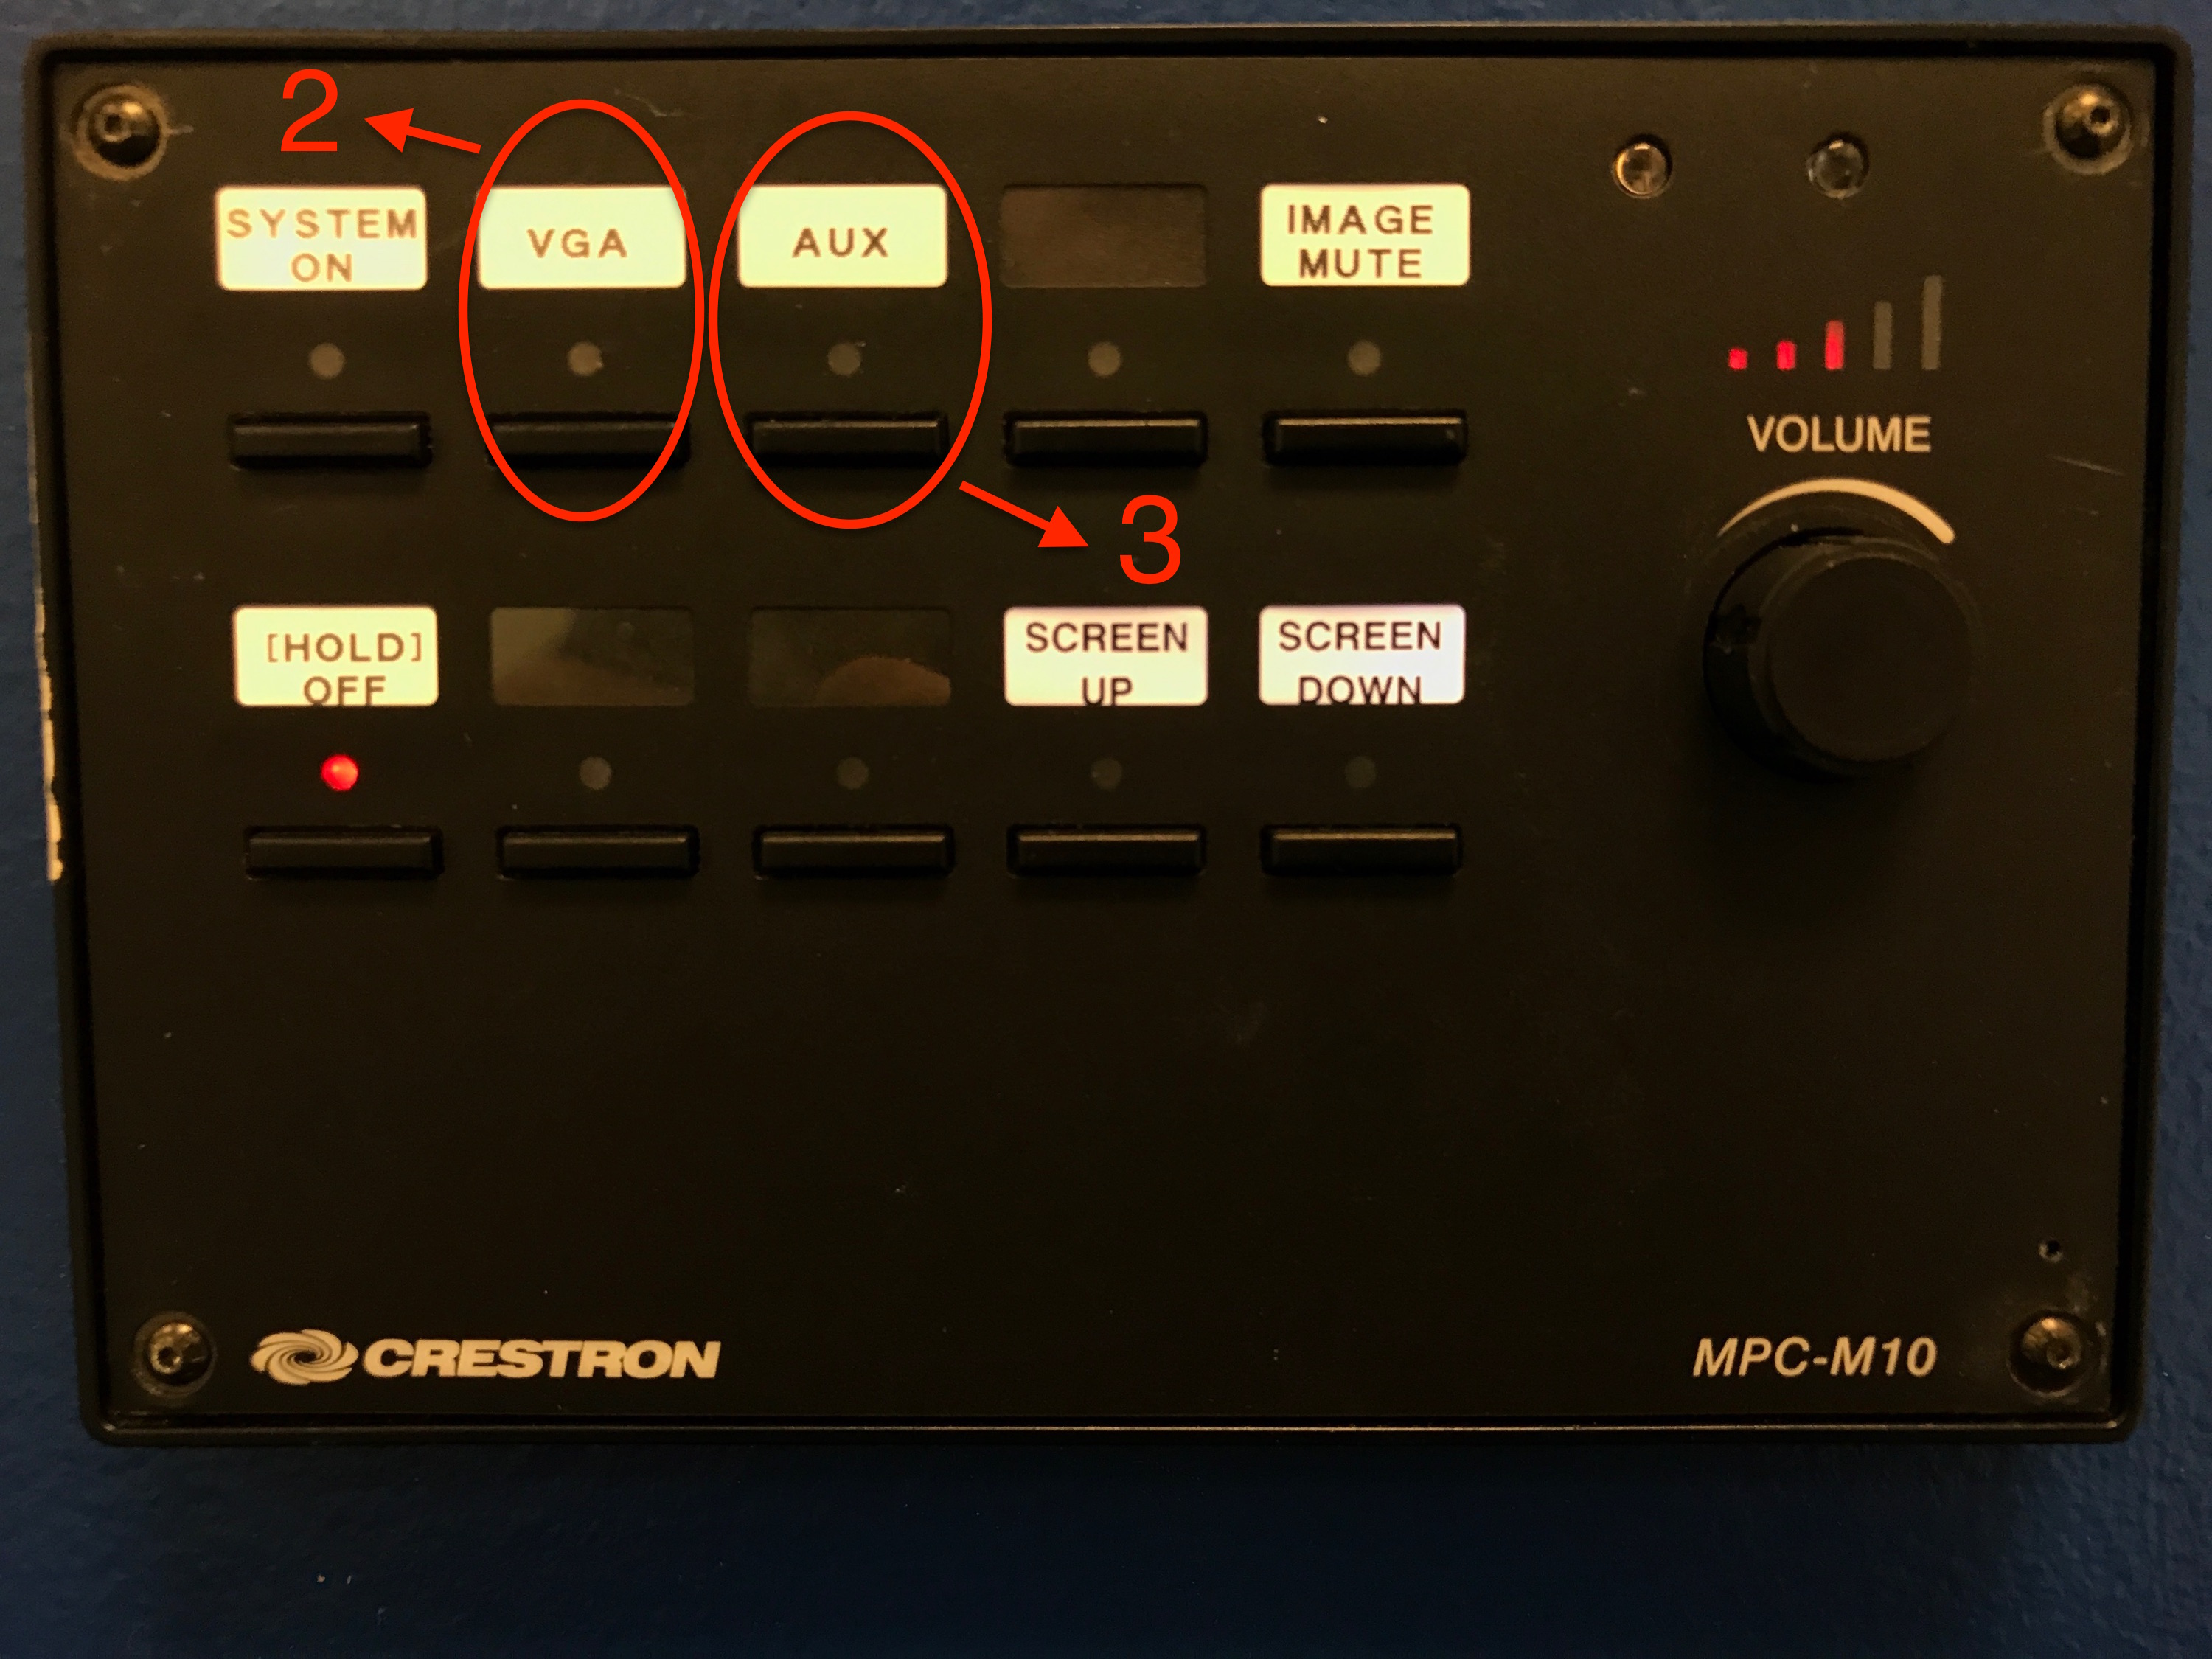 A photo that shows the VGA or AUX input on the control panel.